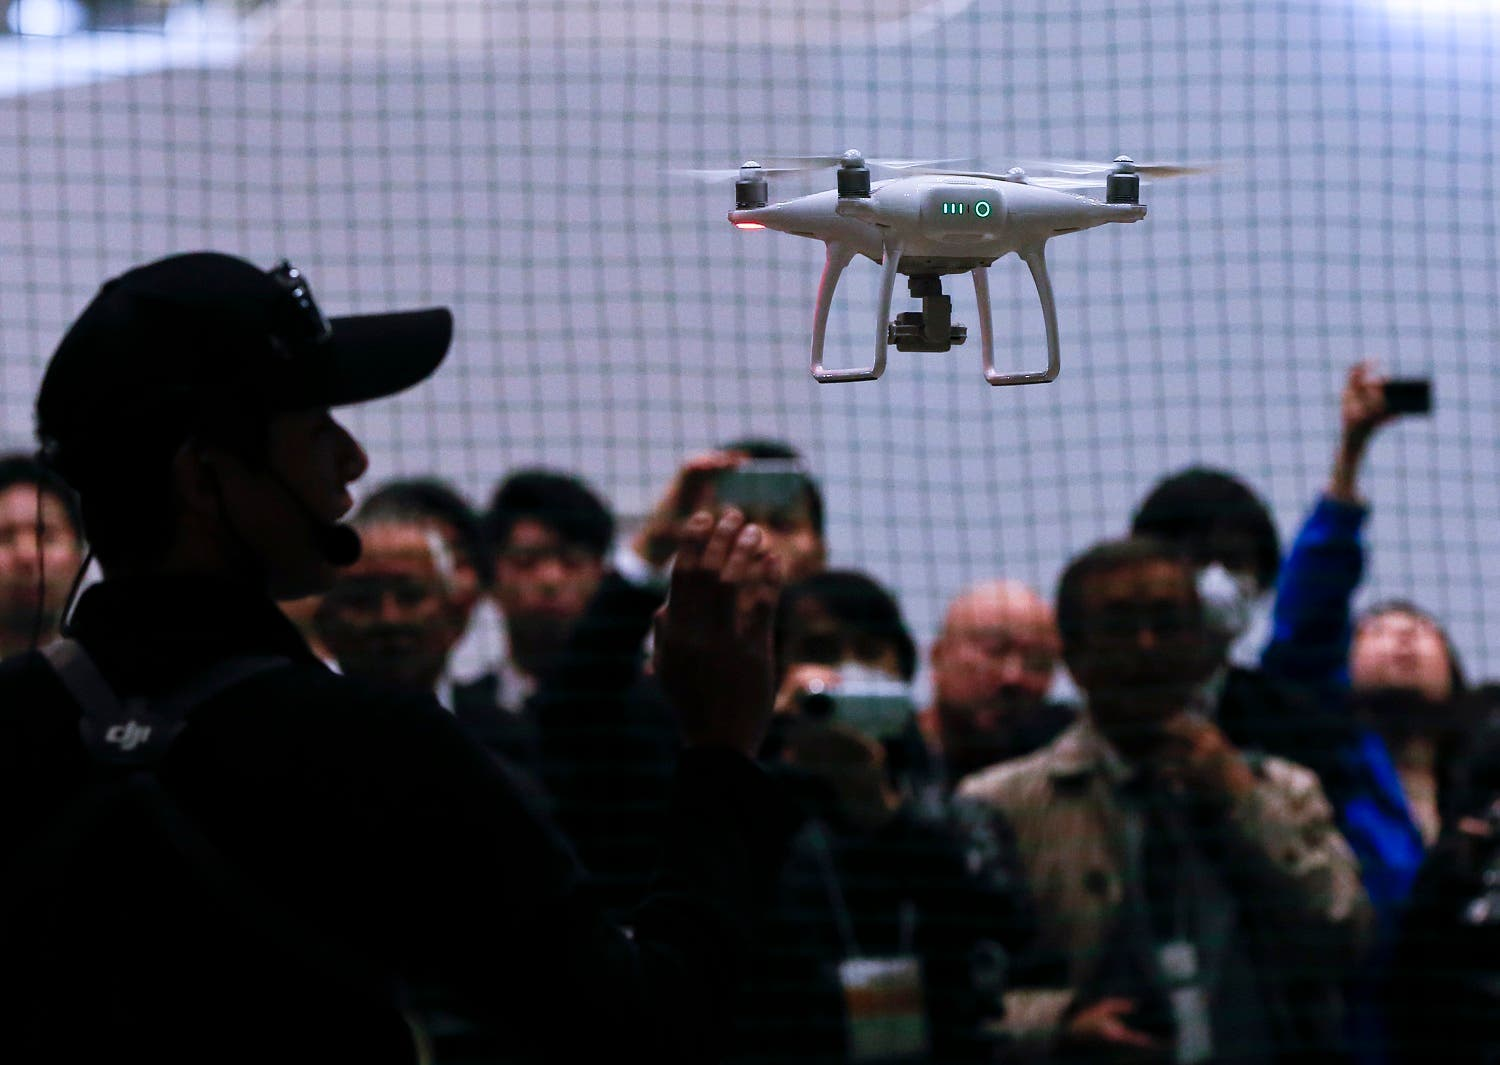 Chinese consumer-drone maker DJI's Phantom 4 flies during a demonstration at Japan Drone expo in Chiba, near Tokyo. (AP)